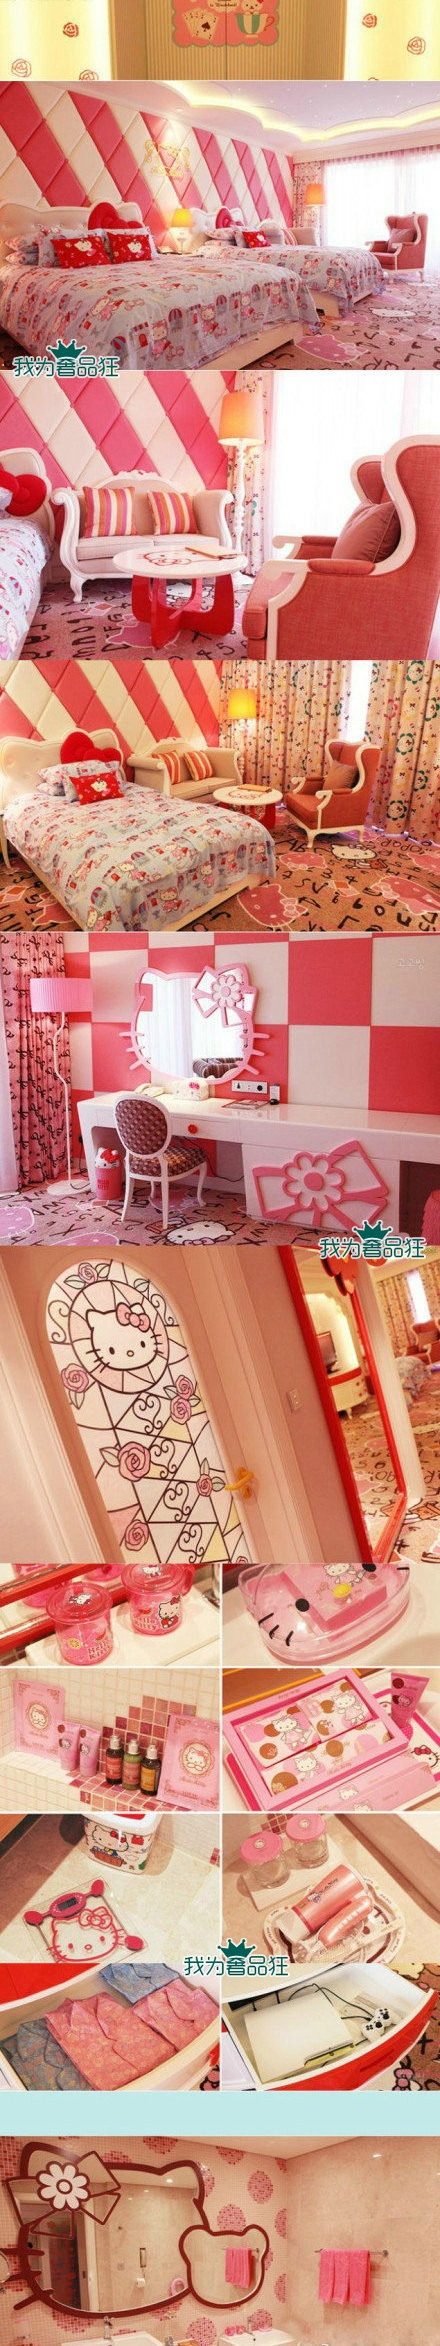 i used to dream of a room filled with hello kitty things